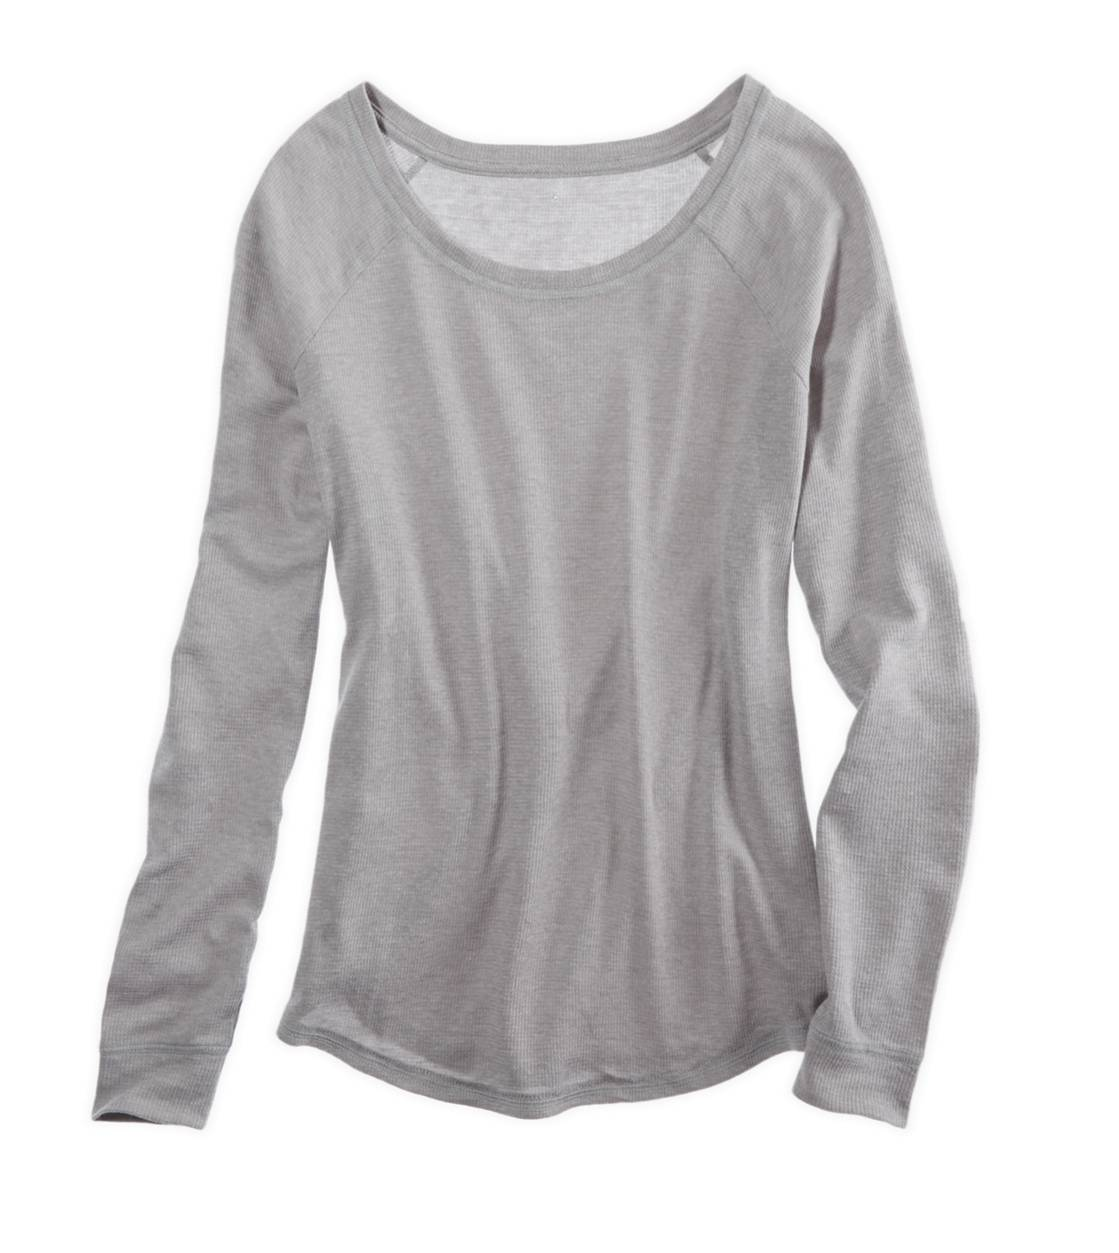 Medium Heather Grey Aerie Waffle Dolman T-Shirt